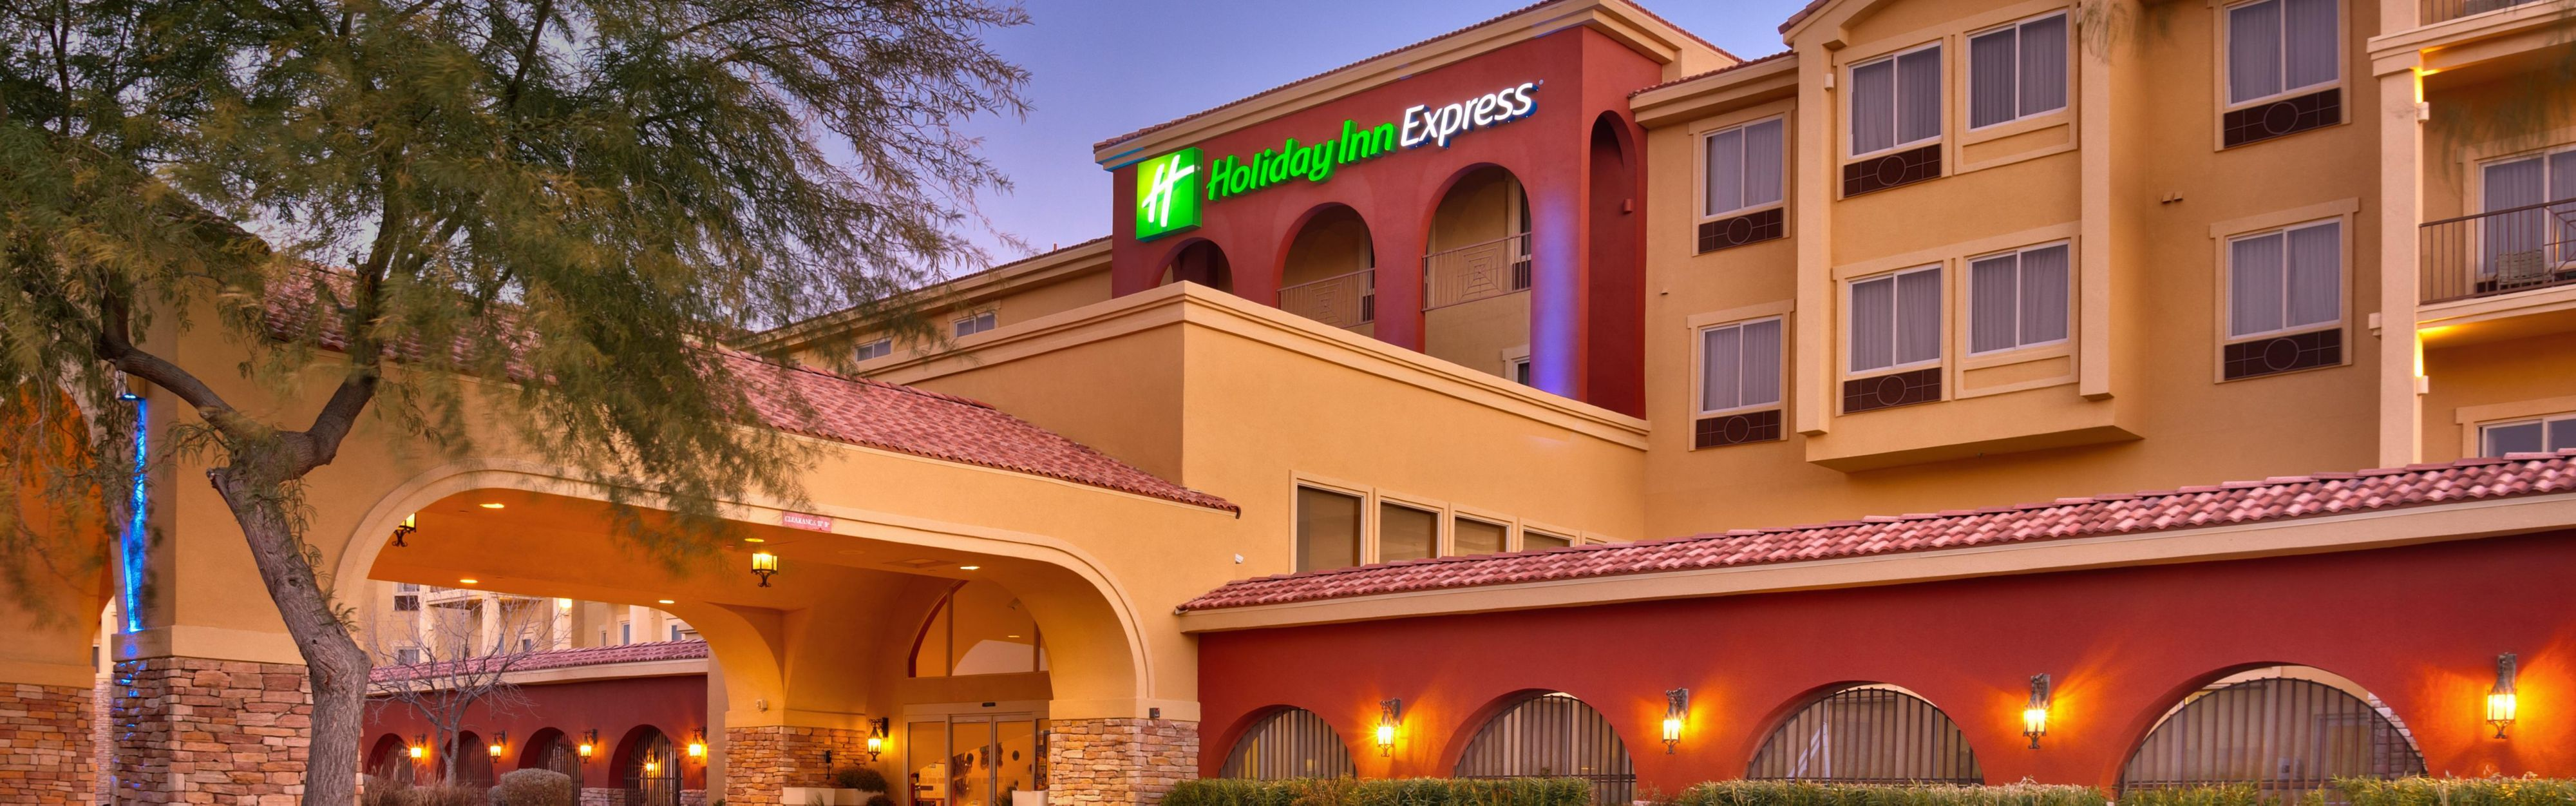 Mesquite nevada coupons